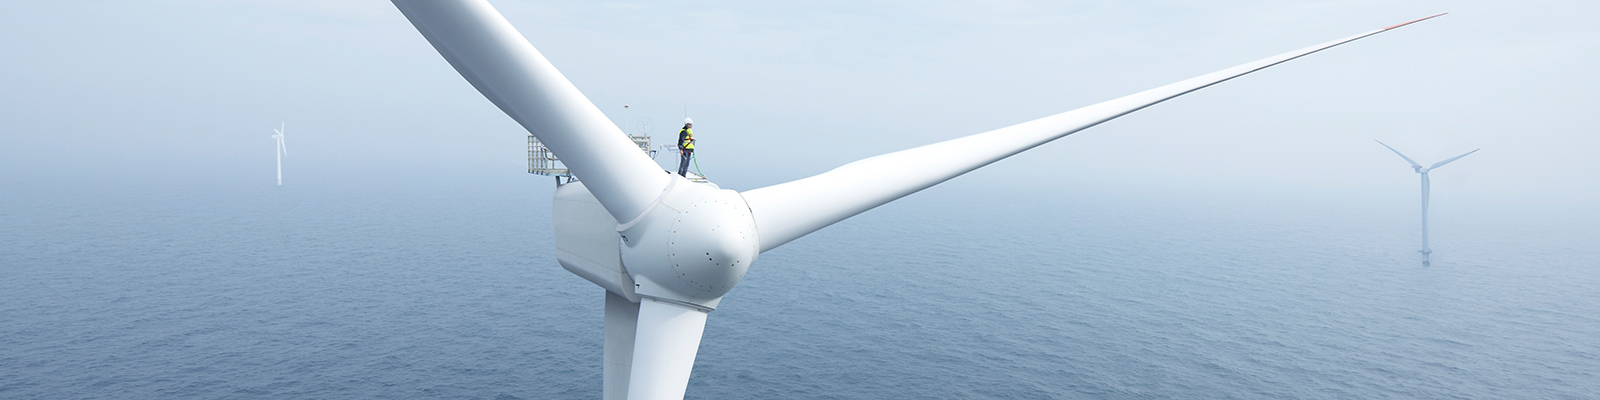 Offshore wind farm; Source: ABB